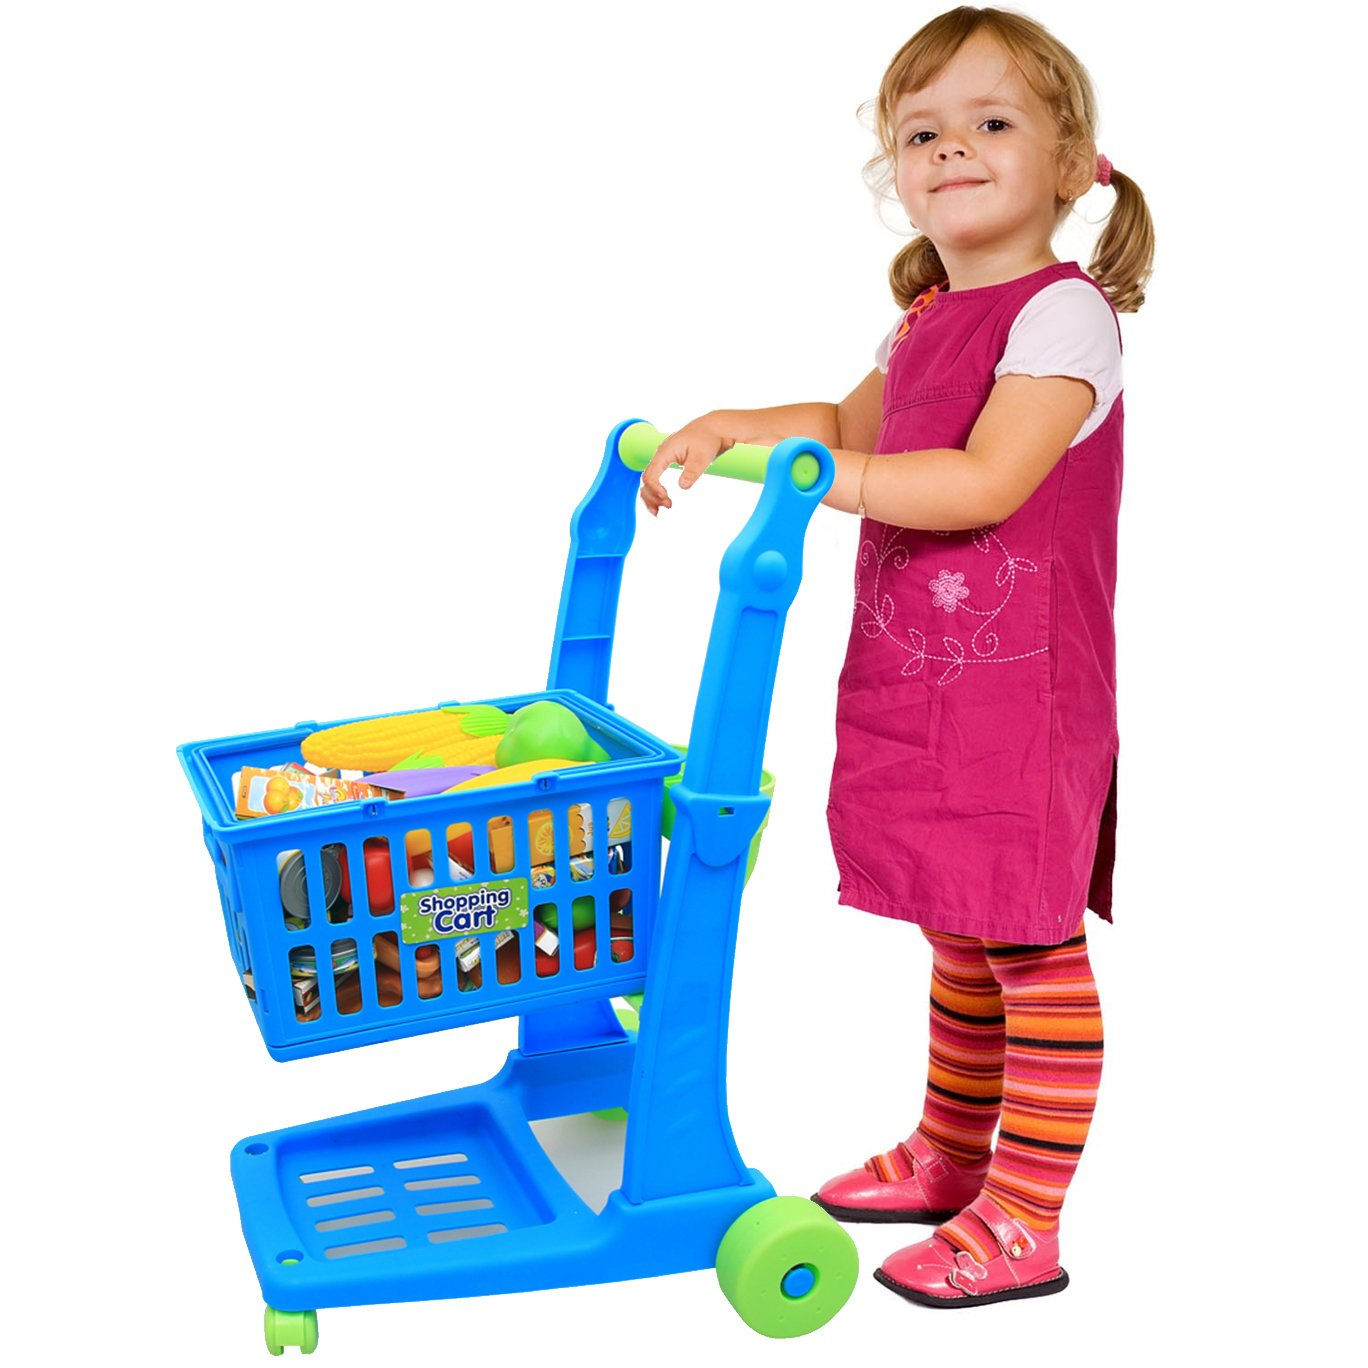 Liberty Imports Deluxe Shopping Cart Toy with Groceries | Supermarket Trolley with Removable Basket Cart | Pretend Play Food, Fruits, Vegetables Set for Kids (76 Pieces)